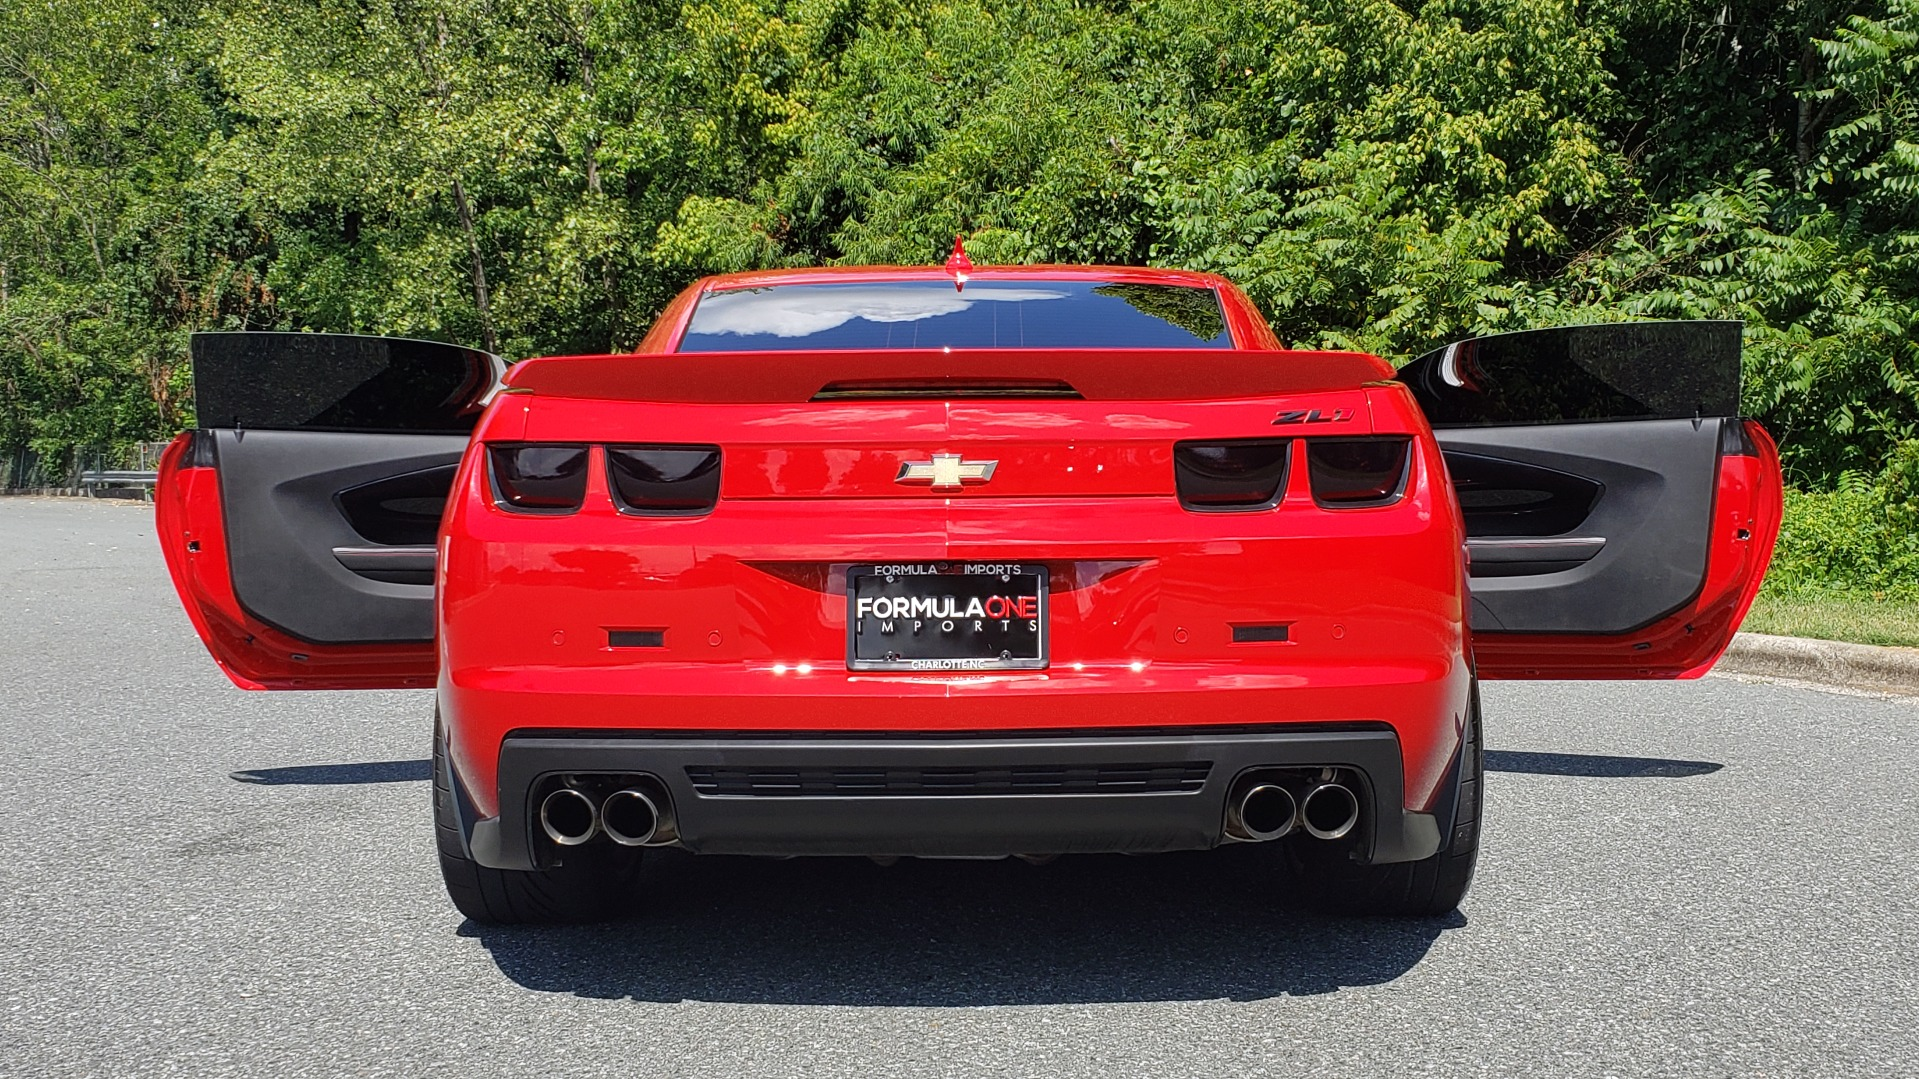 Used 2013 Chevrolet CAMARO ZL1 / 6.2L SUPERCHARGED 580HP / 6-SPD AUTO / NAV / REARVIEW for sale Sold at Formula Imports in Charlotte NC 28227 37